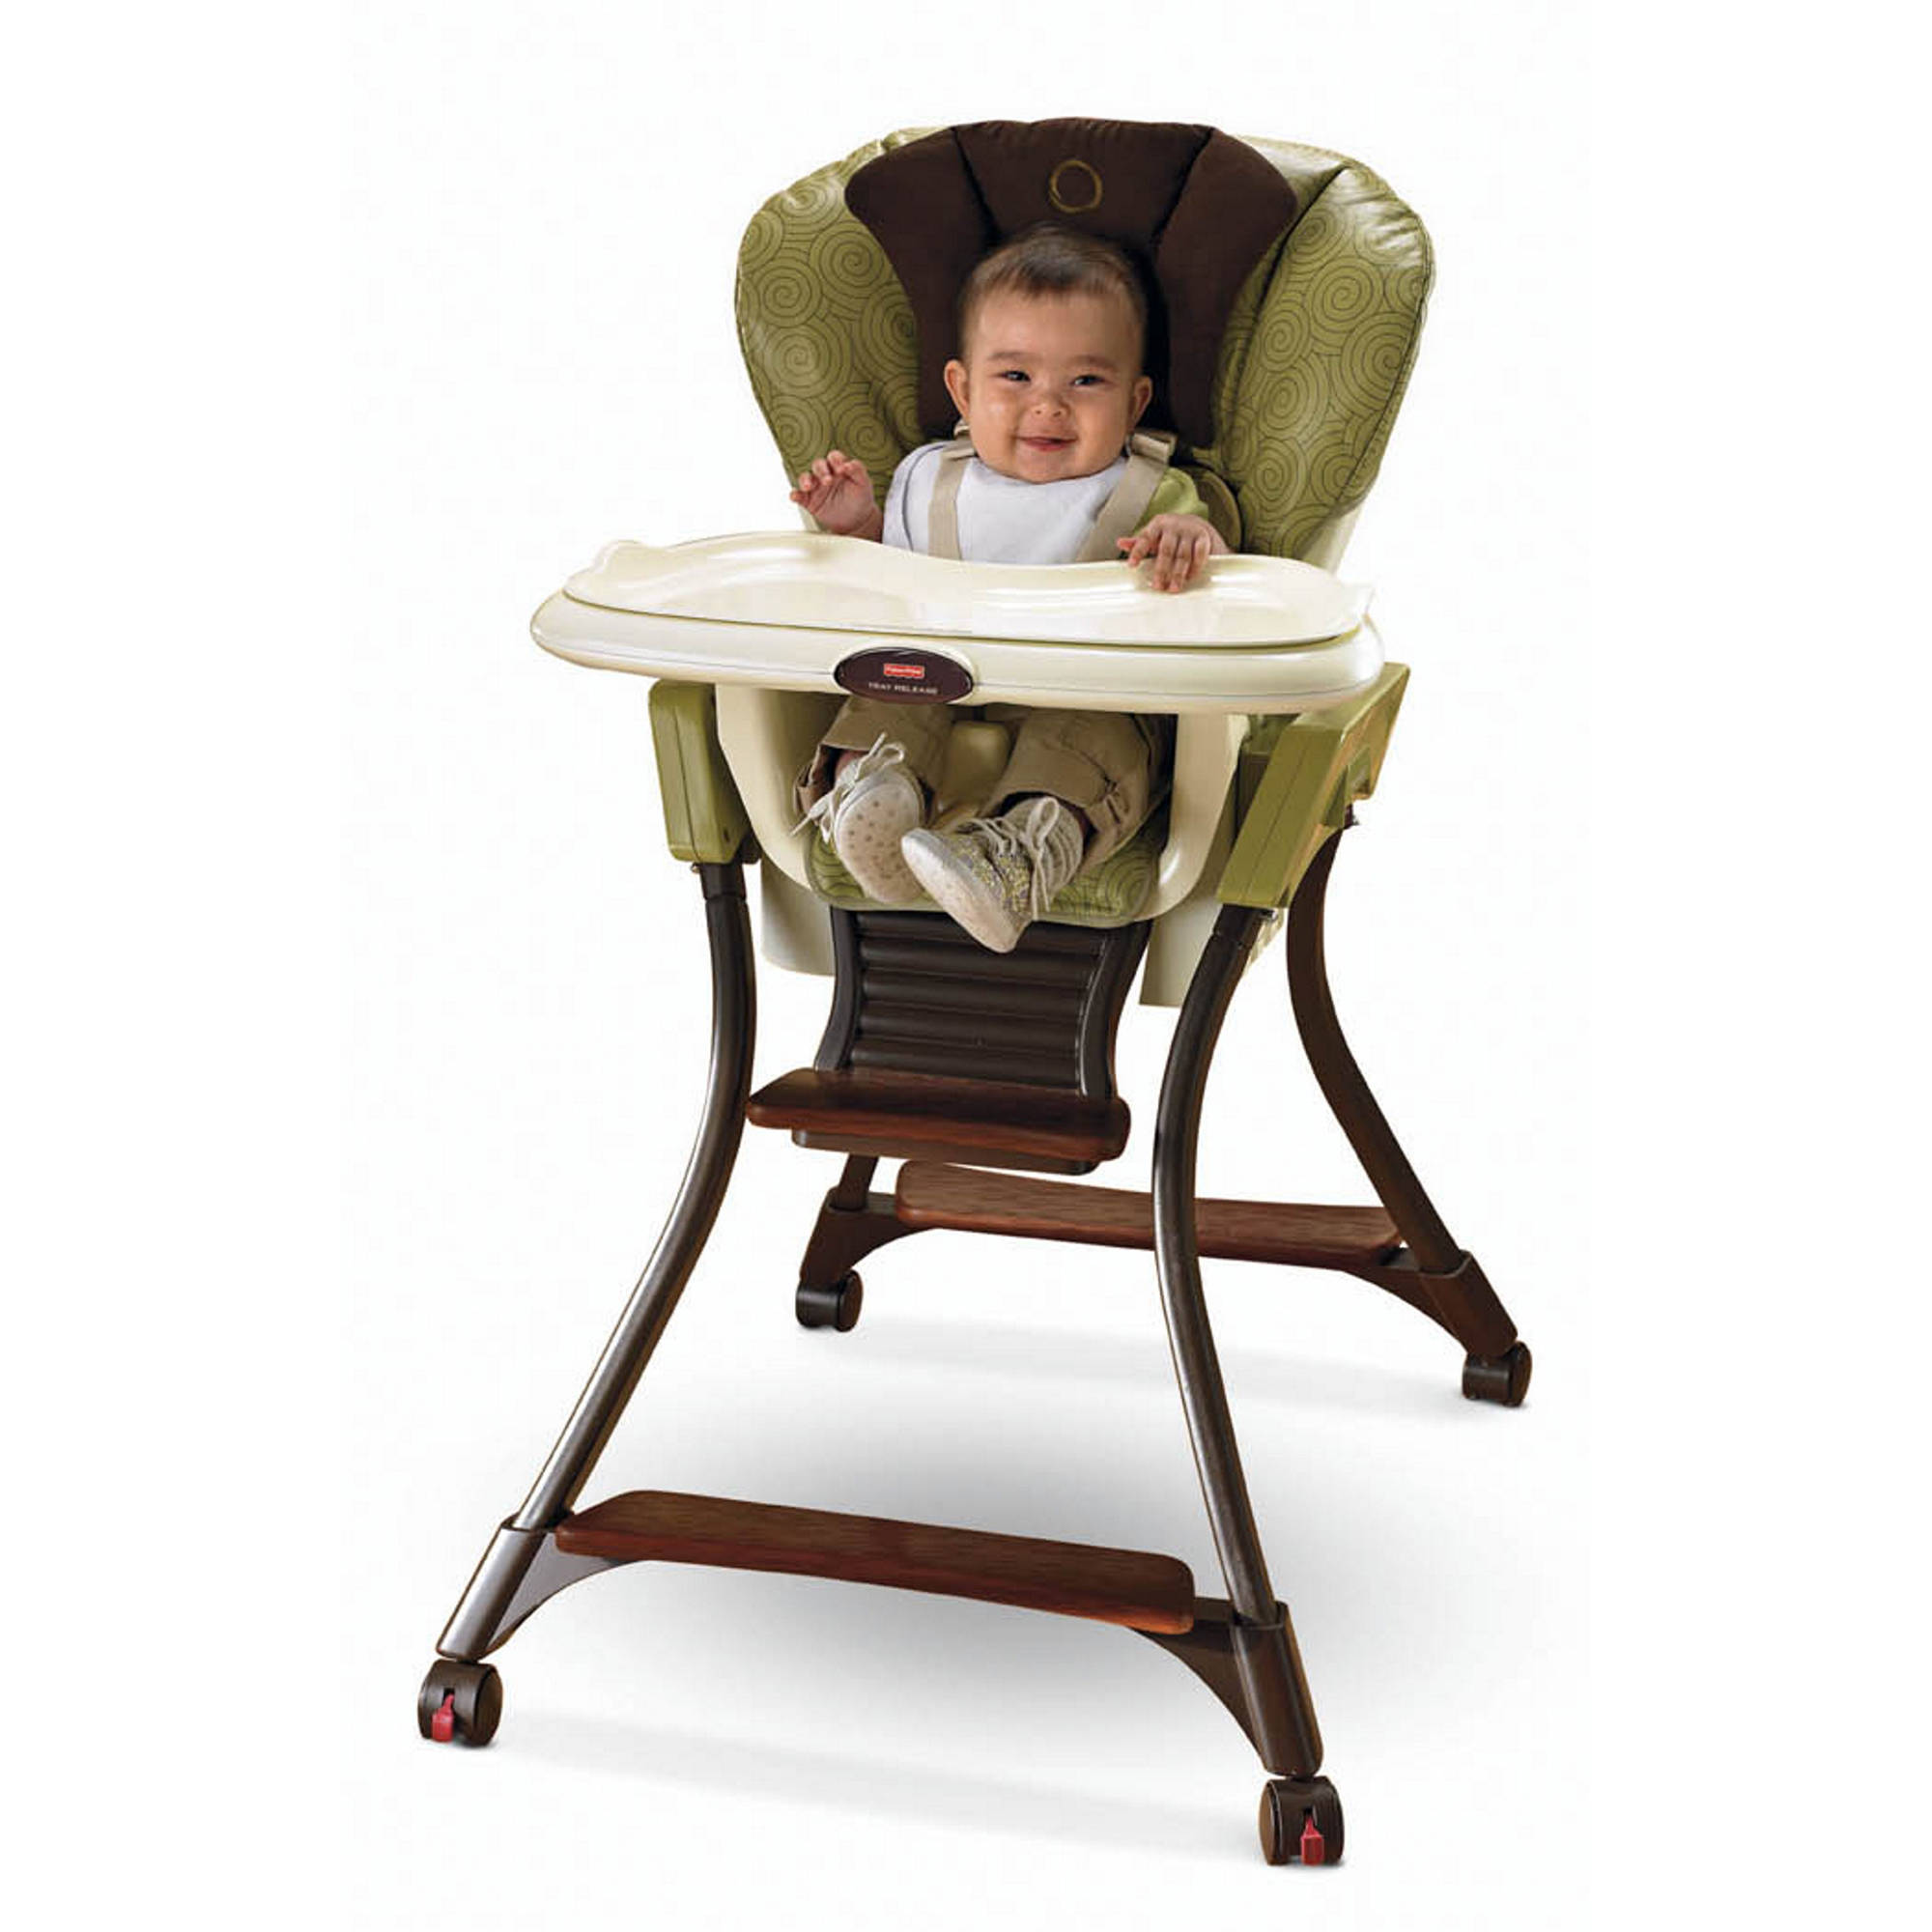 high chairs for babies and toddlers kids lawn top 10 best  shopcalypse